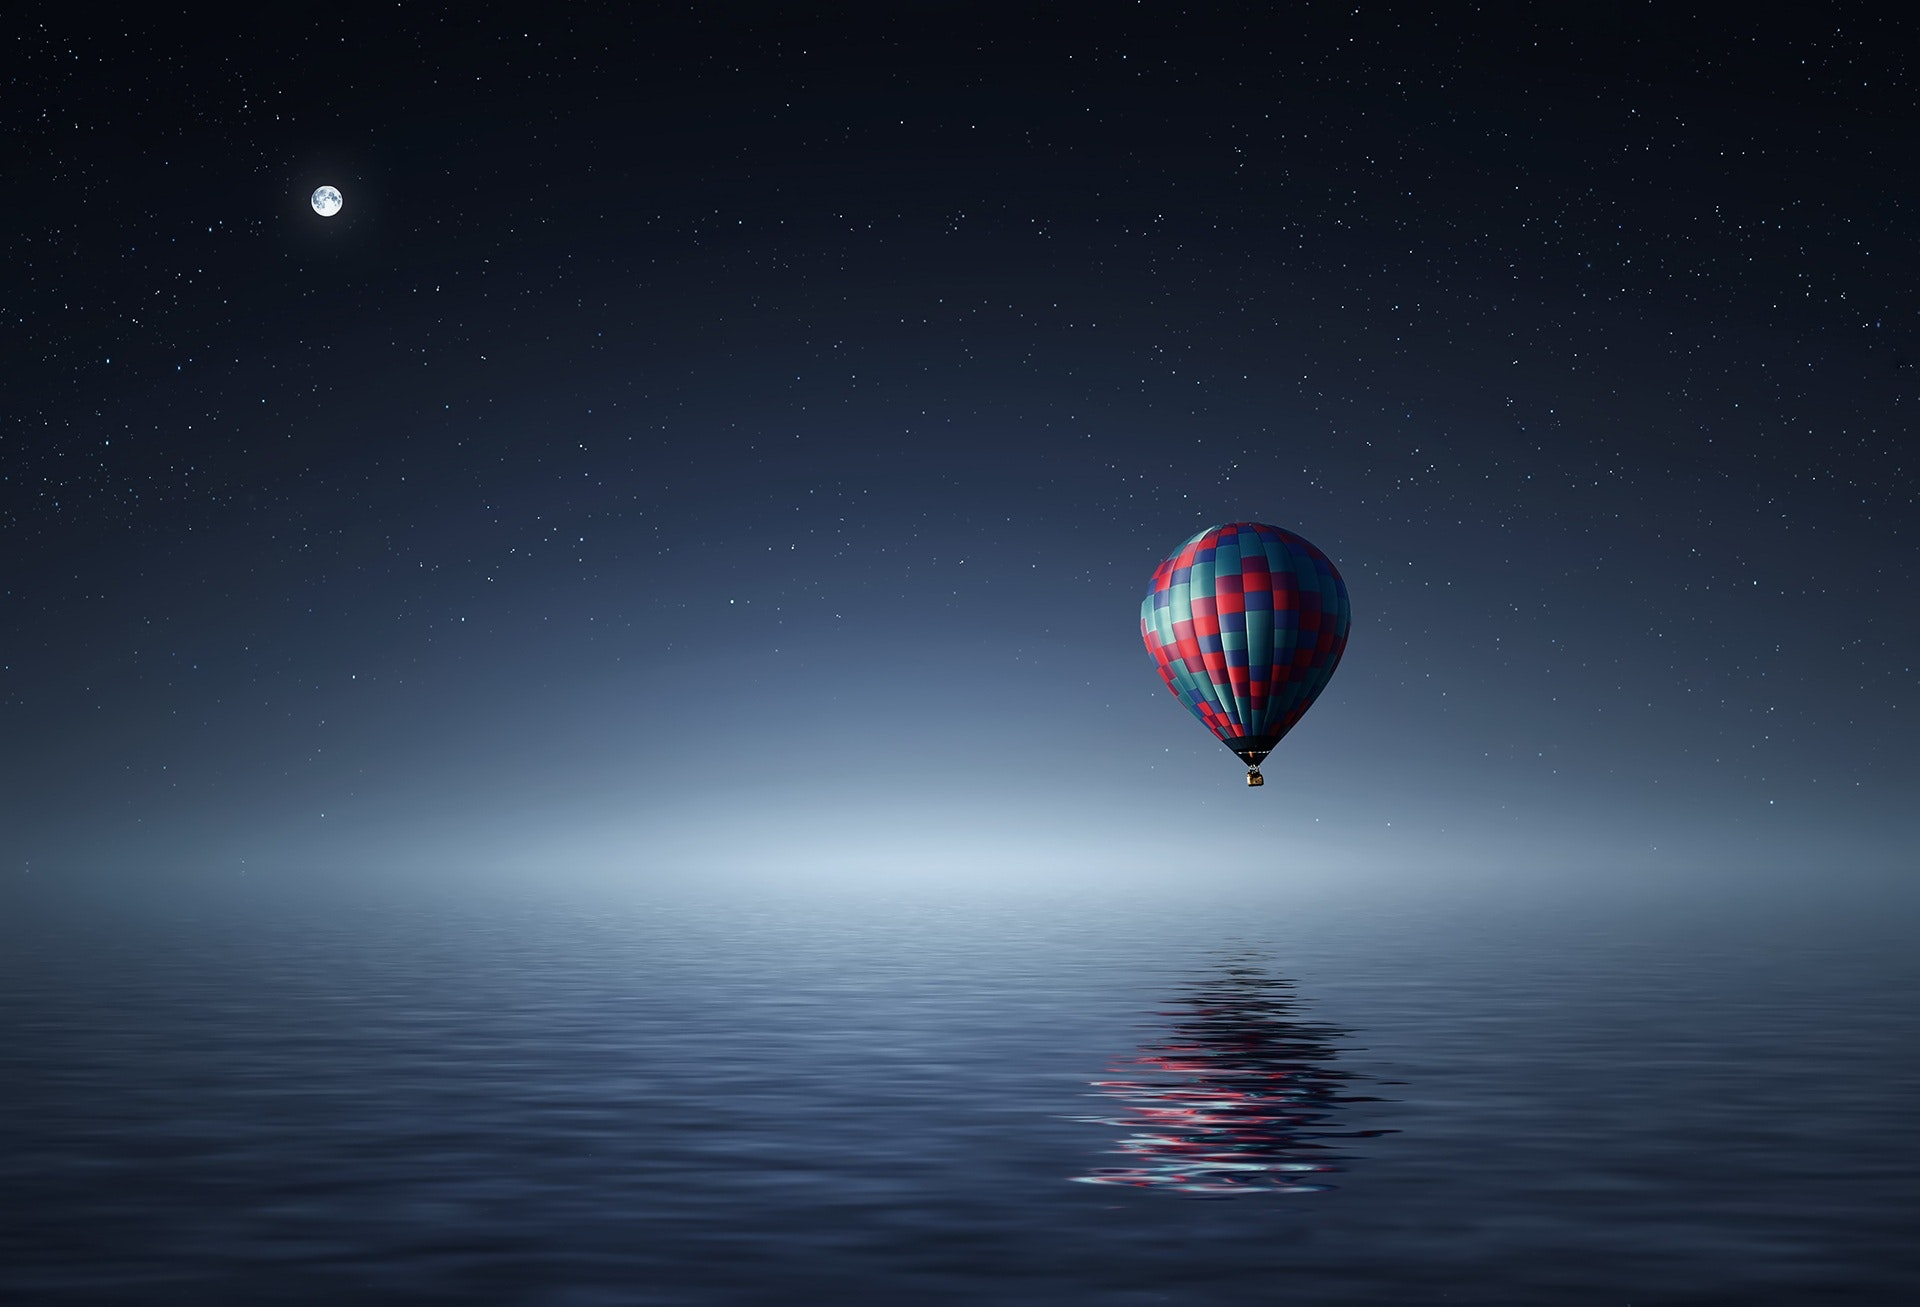 Red and Blue Hot Air Balloon Floating on Air on Body of Water during Night Time, Adventure, Seascape water, Moving, Night, HQ Photo